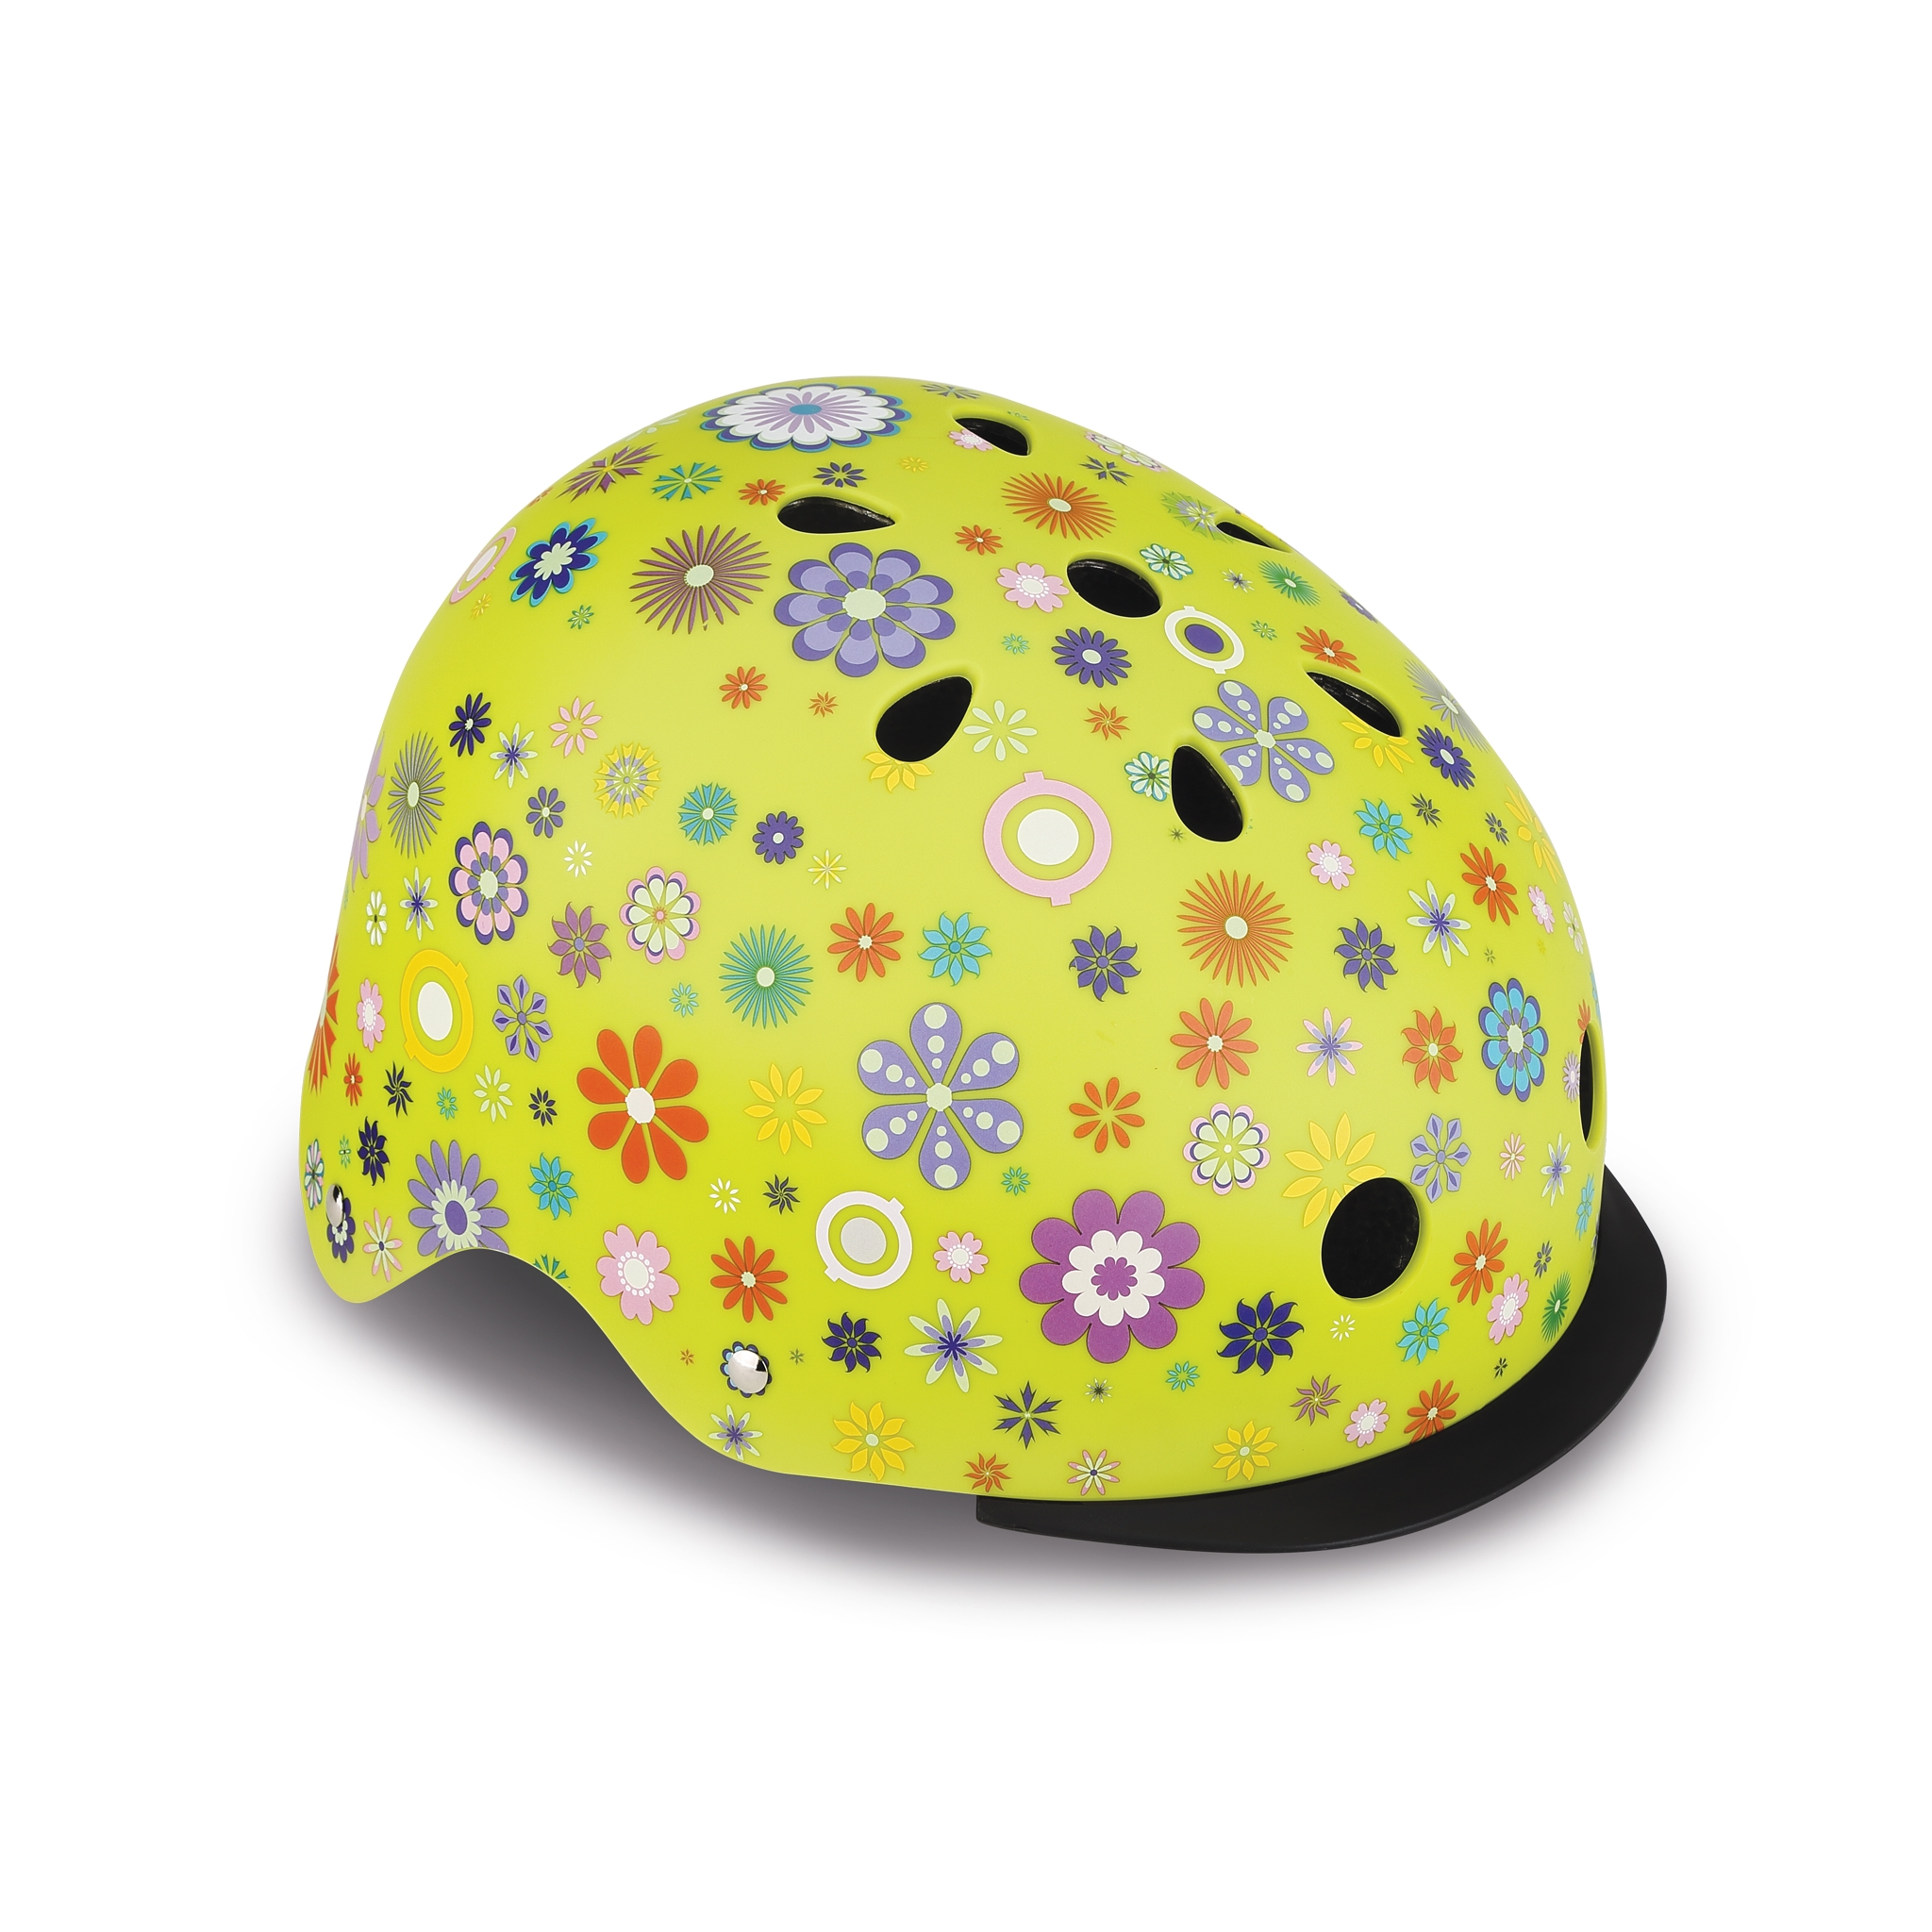 ELITE-helmets-scooter-helmets-for-kids-in-mold-polycarbonate-outer-shell-lime-green 0